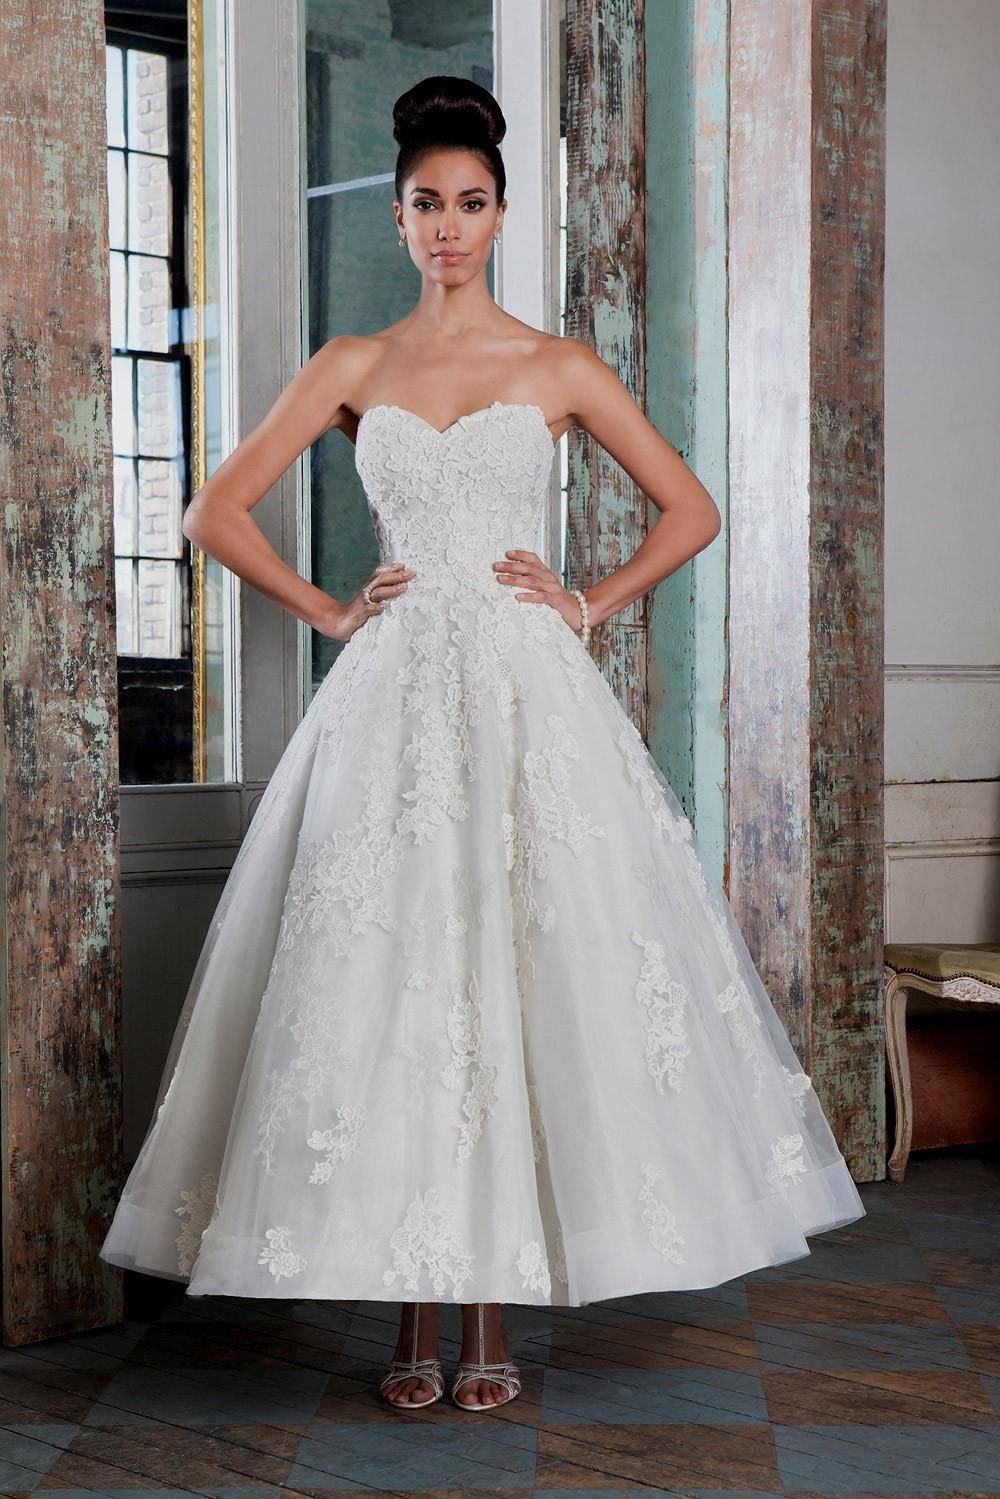 Ideas 50s inspired wedding dresses 50s style wedding dress naf ideas 50s inspired wedding dresses 50s style wedding dress naf dresses our favourite 1950s inspired hitched ombrellifo Choice Image